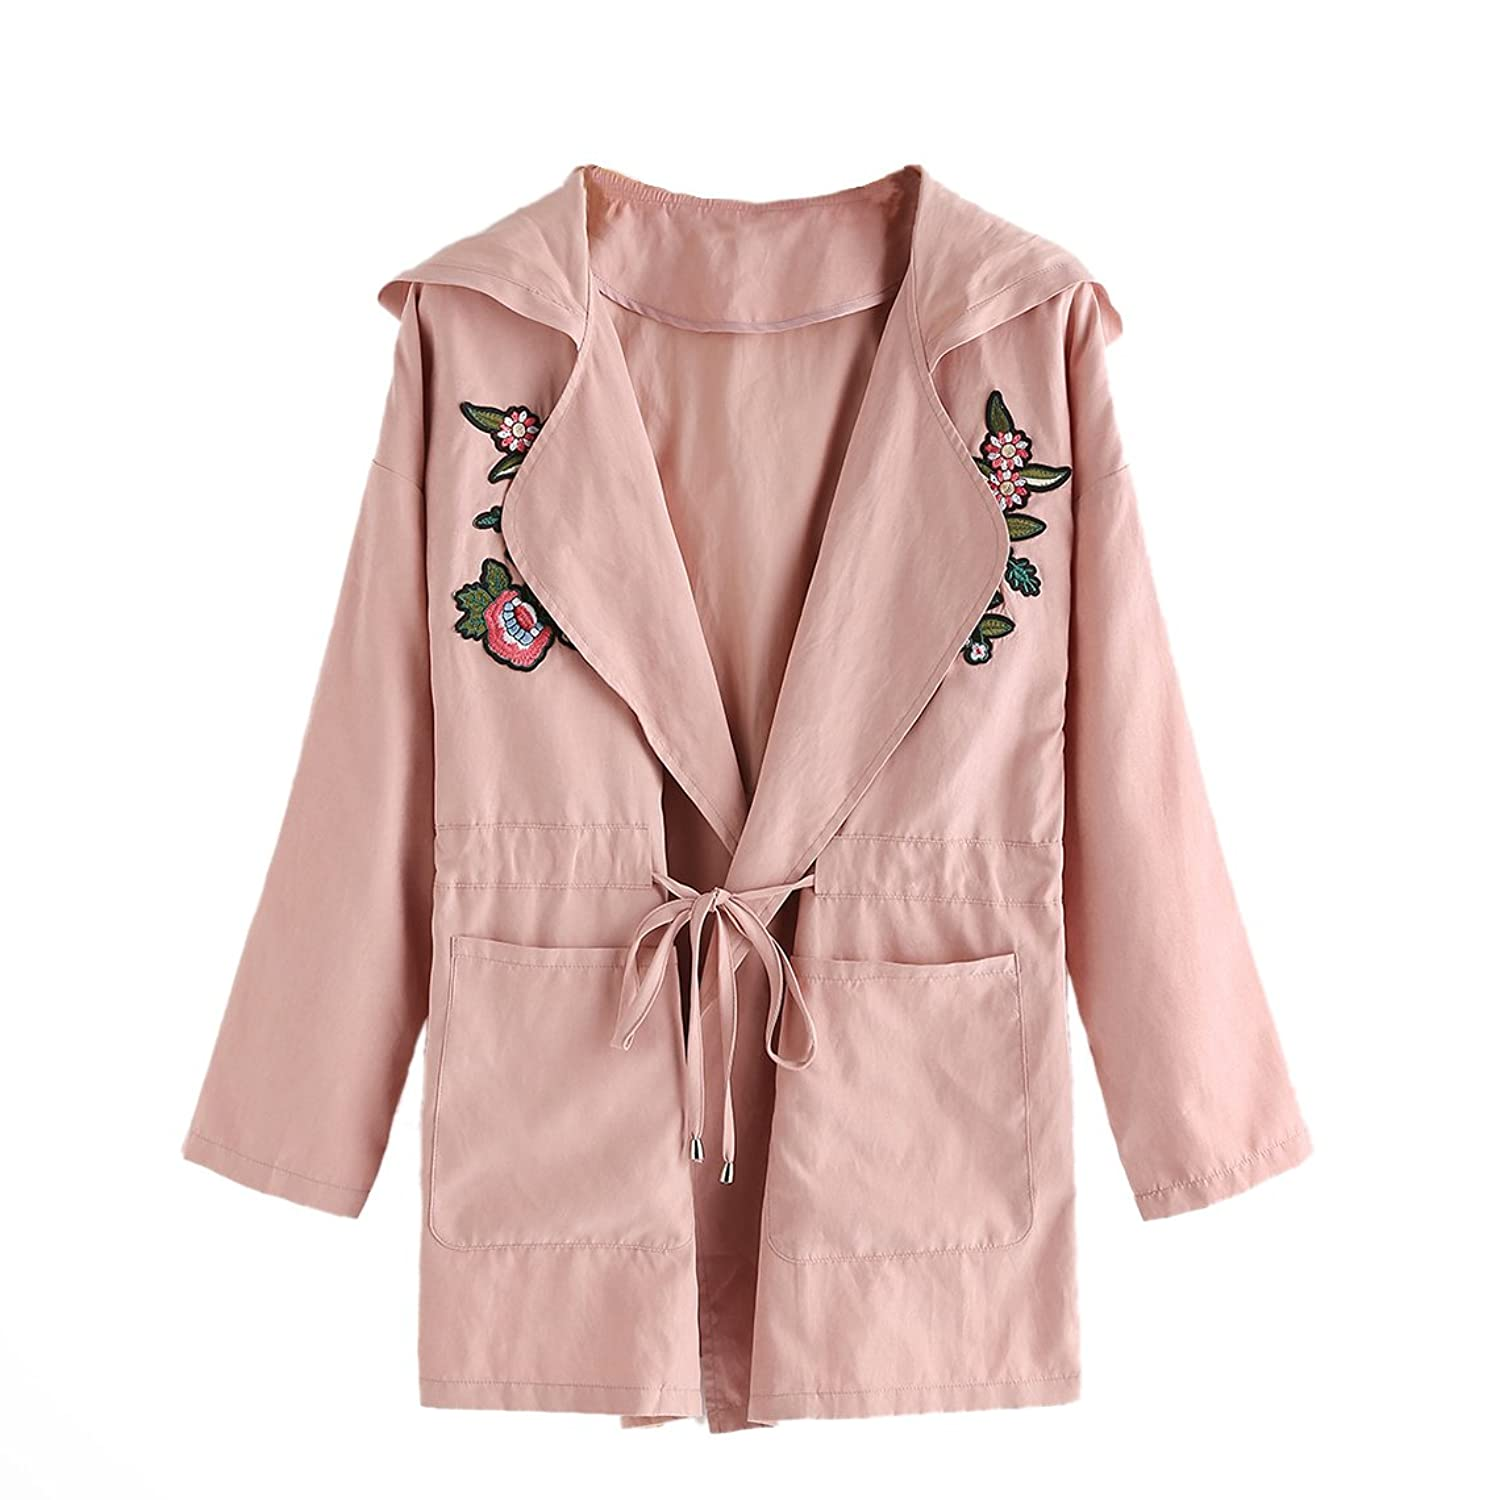 Floerns Women's Hooded Lapel Thin Coat Embroidered Flower Drawstring Waist Casual Jacket Outwear